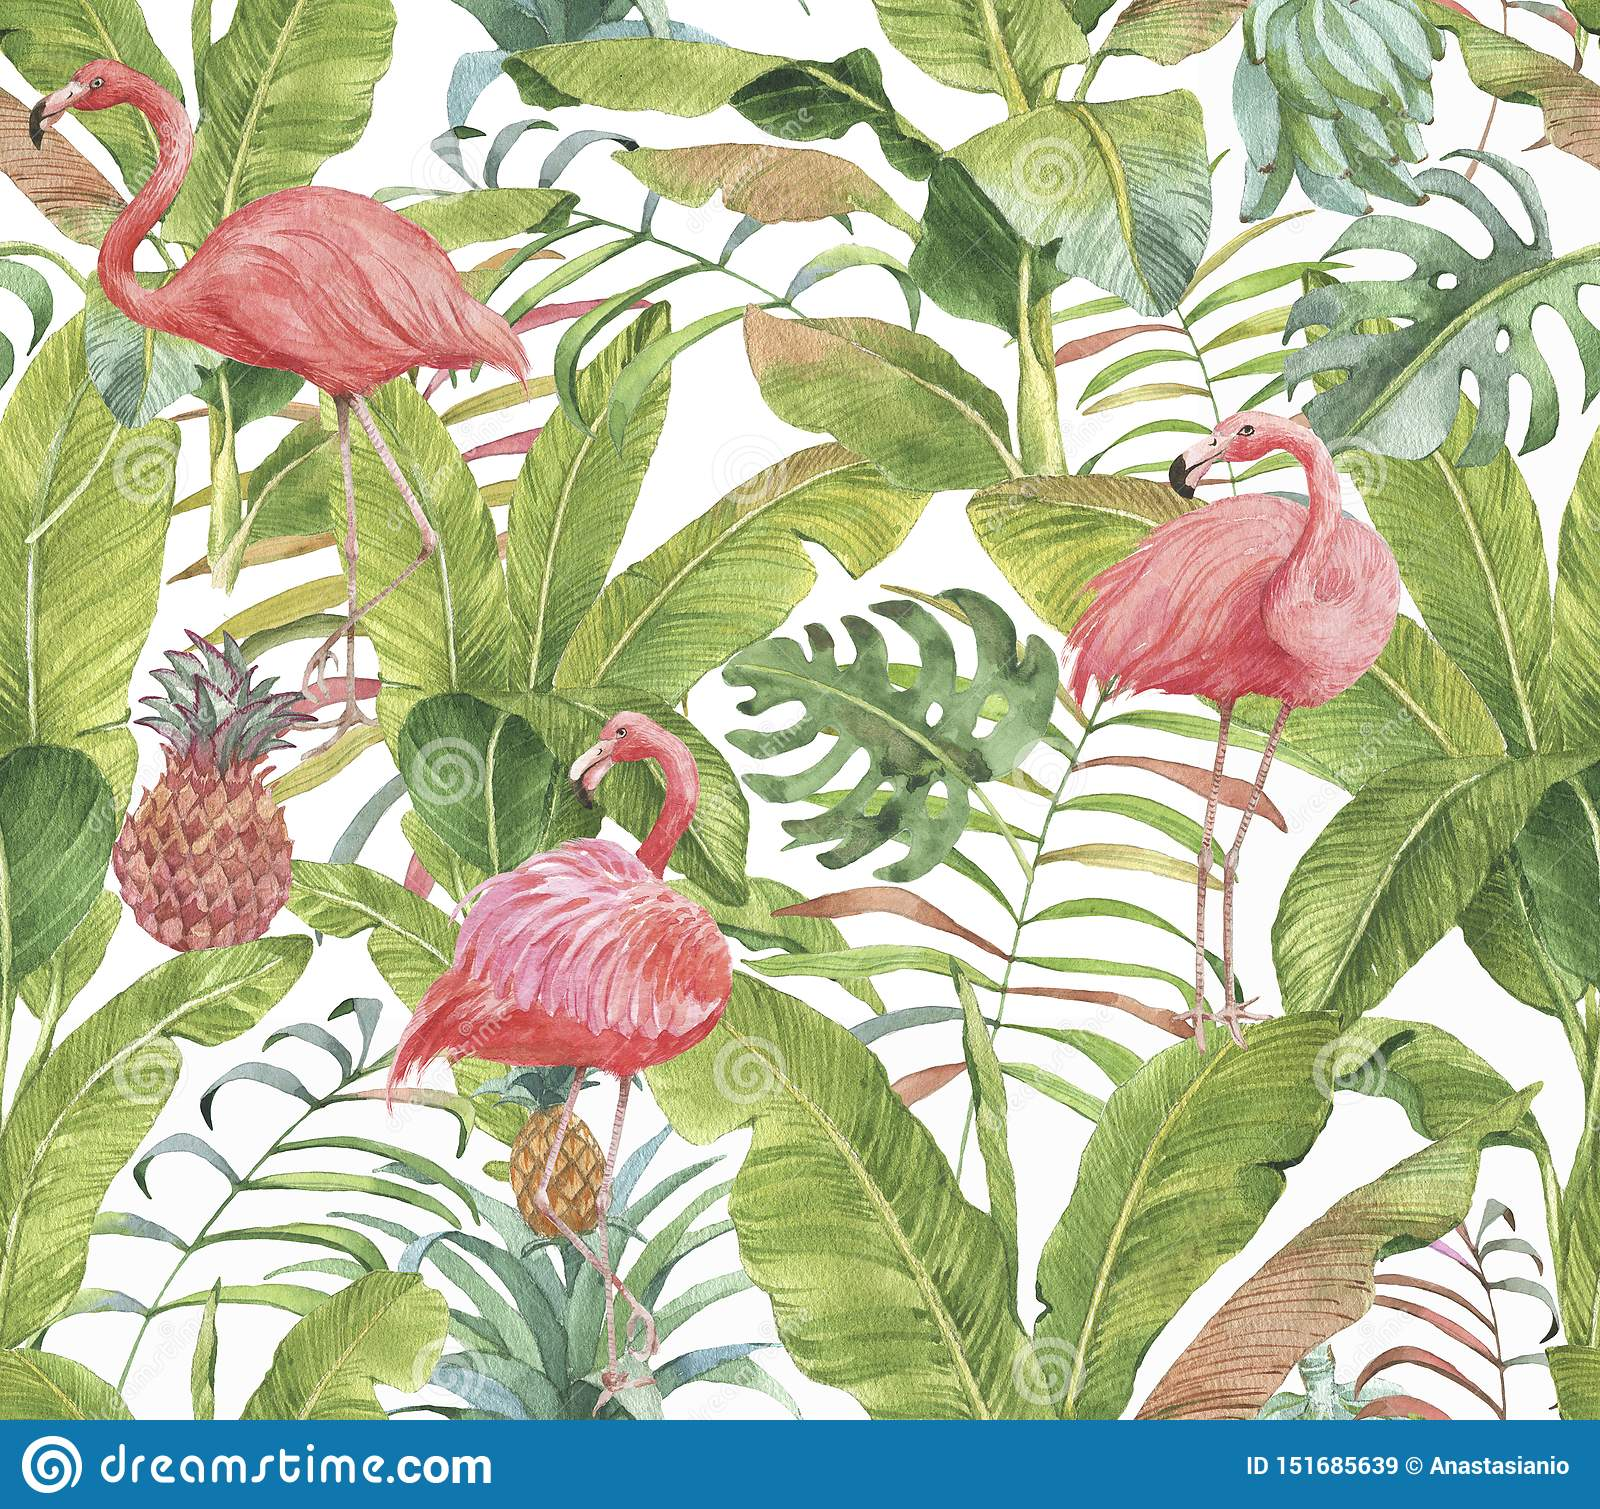 Hand drawn watercolor seamless pattern with pink flamingo, pineapple and exotic plants.